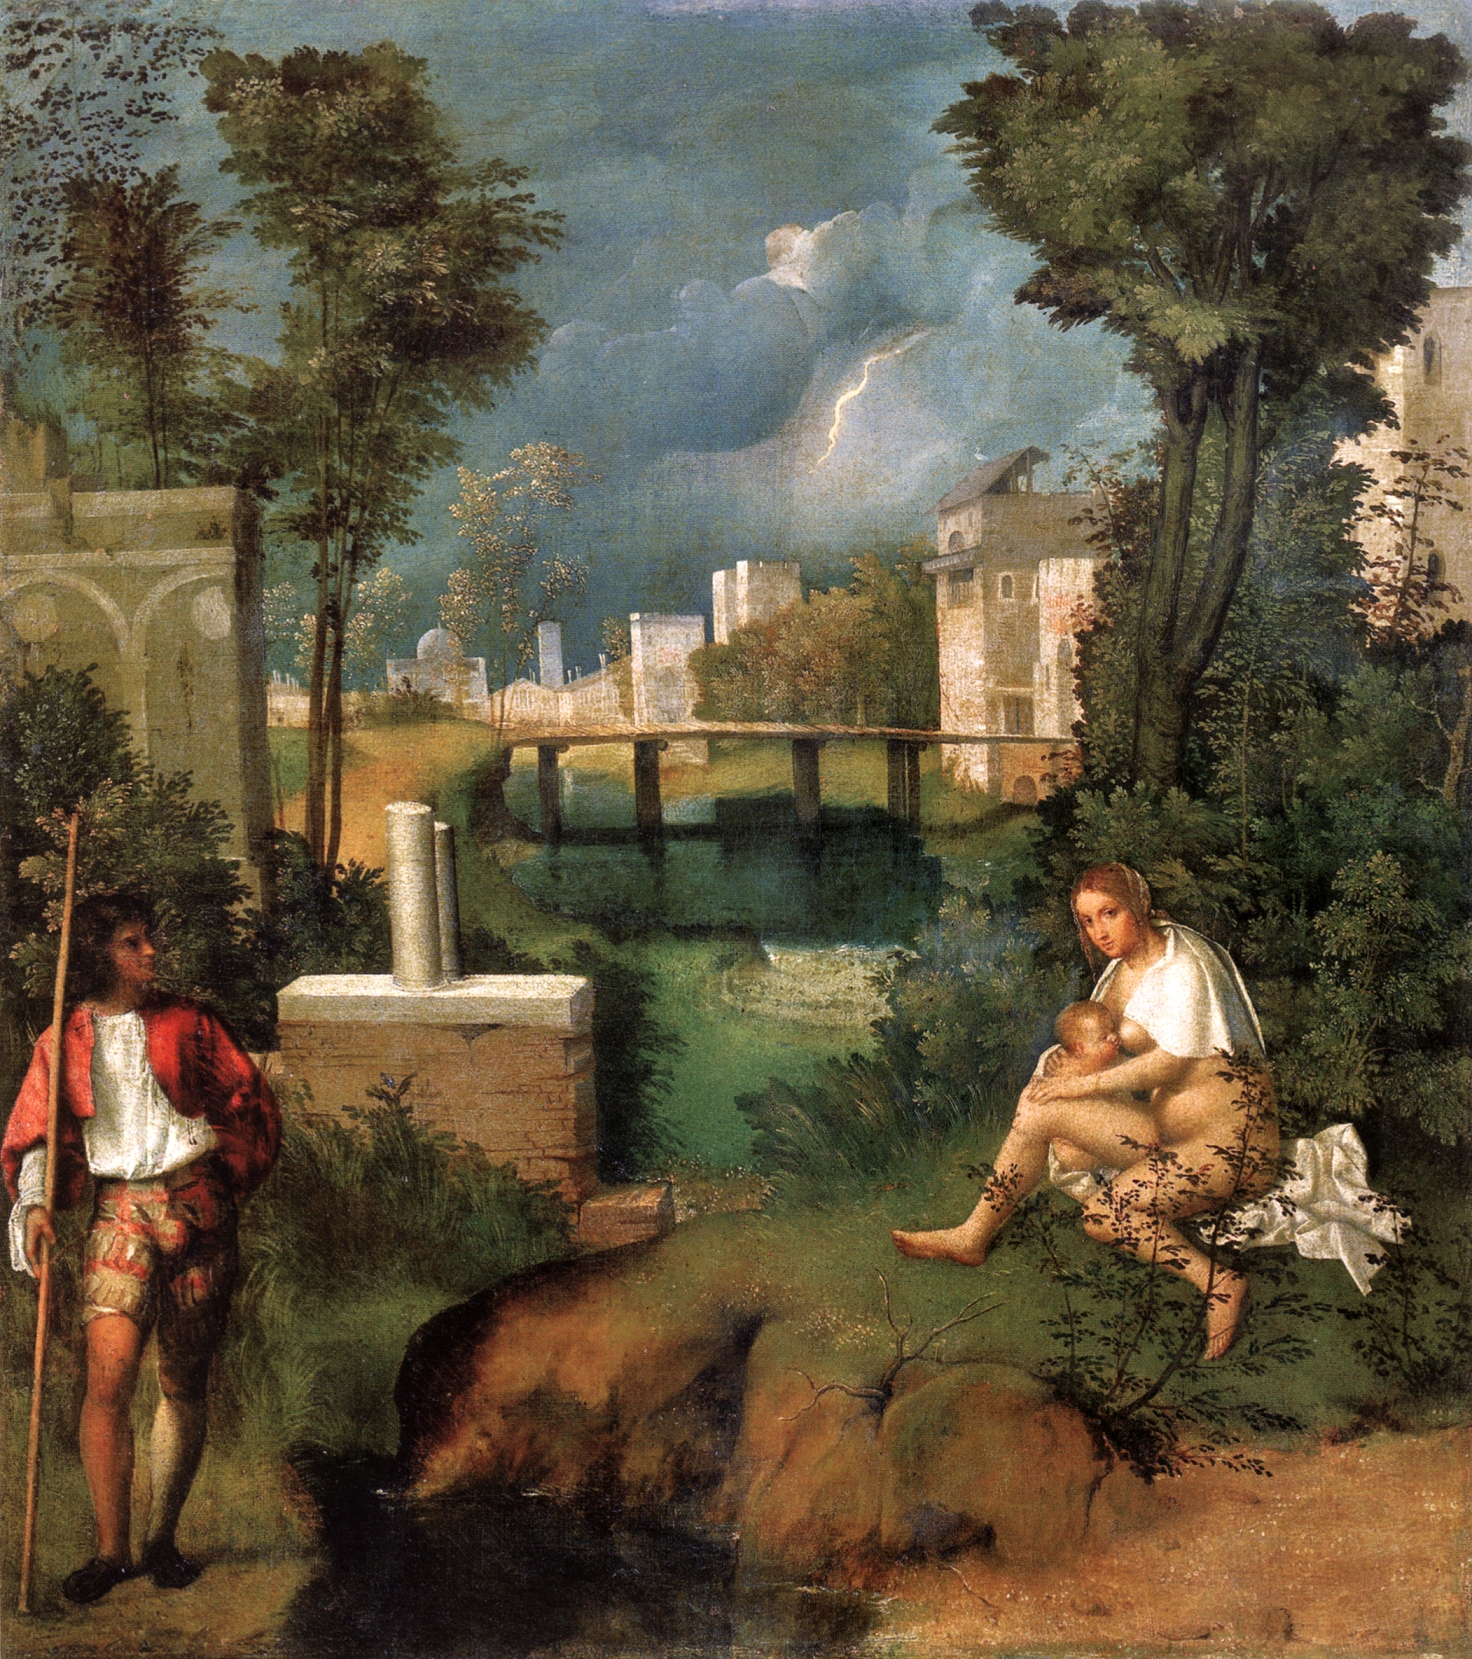 the tempest giorgione 1508 silver and exact